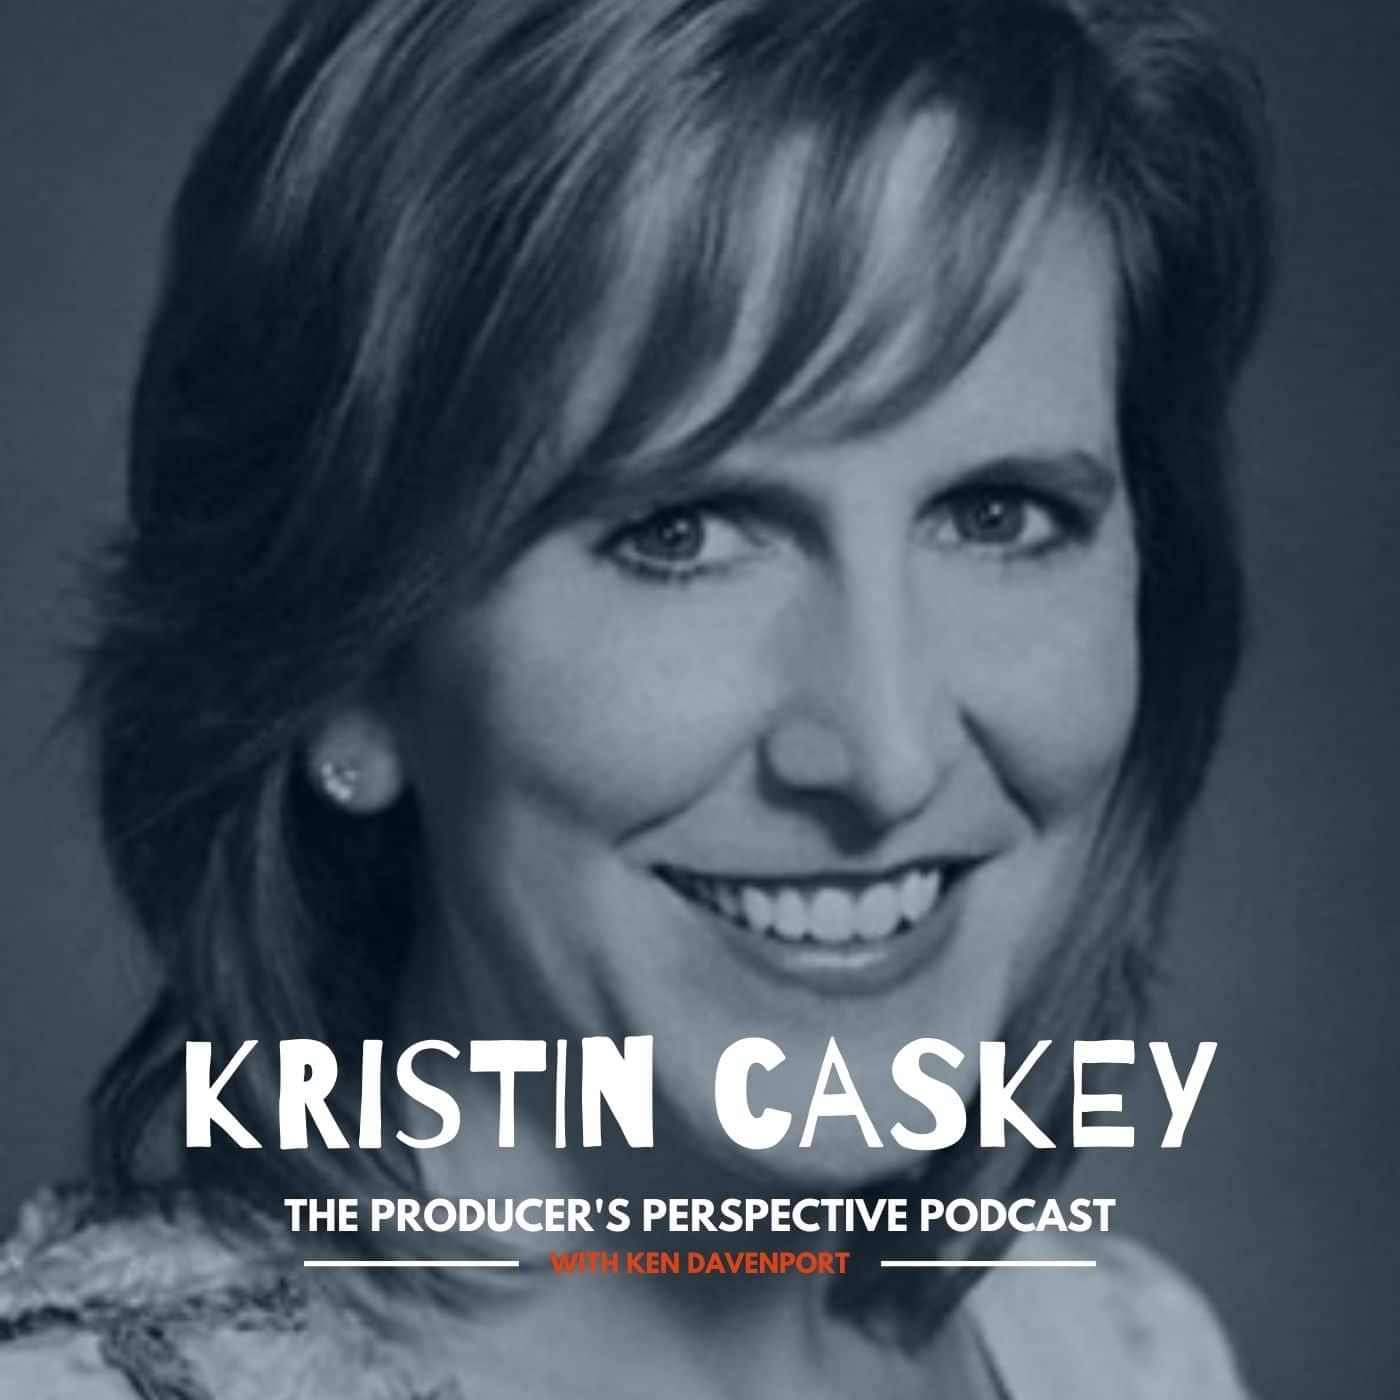 Ken Davenport's The Producer's Perspective Podcast Episode 32 - Kristin Caskey